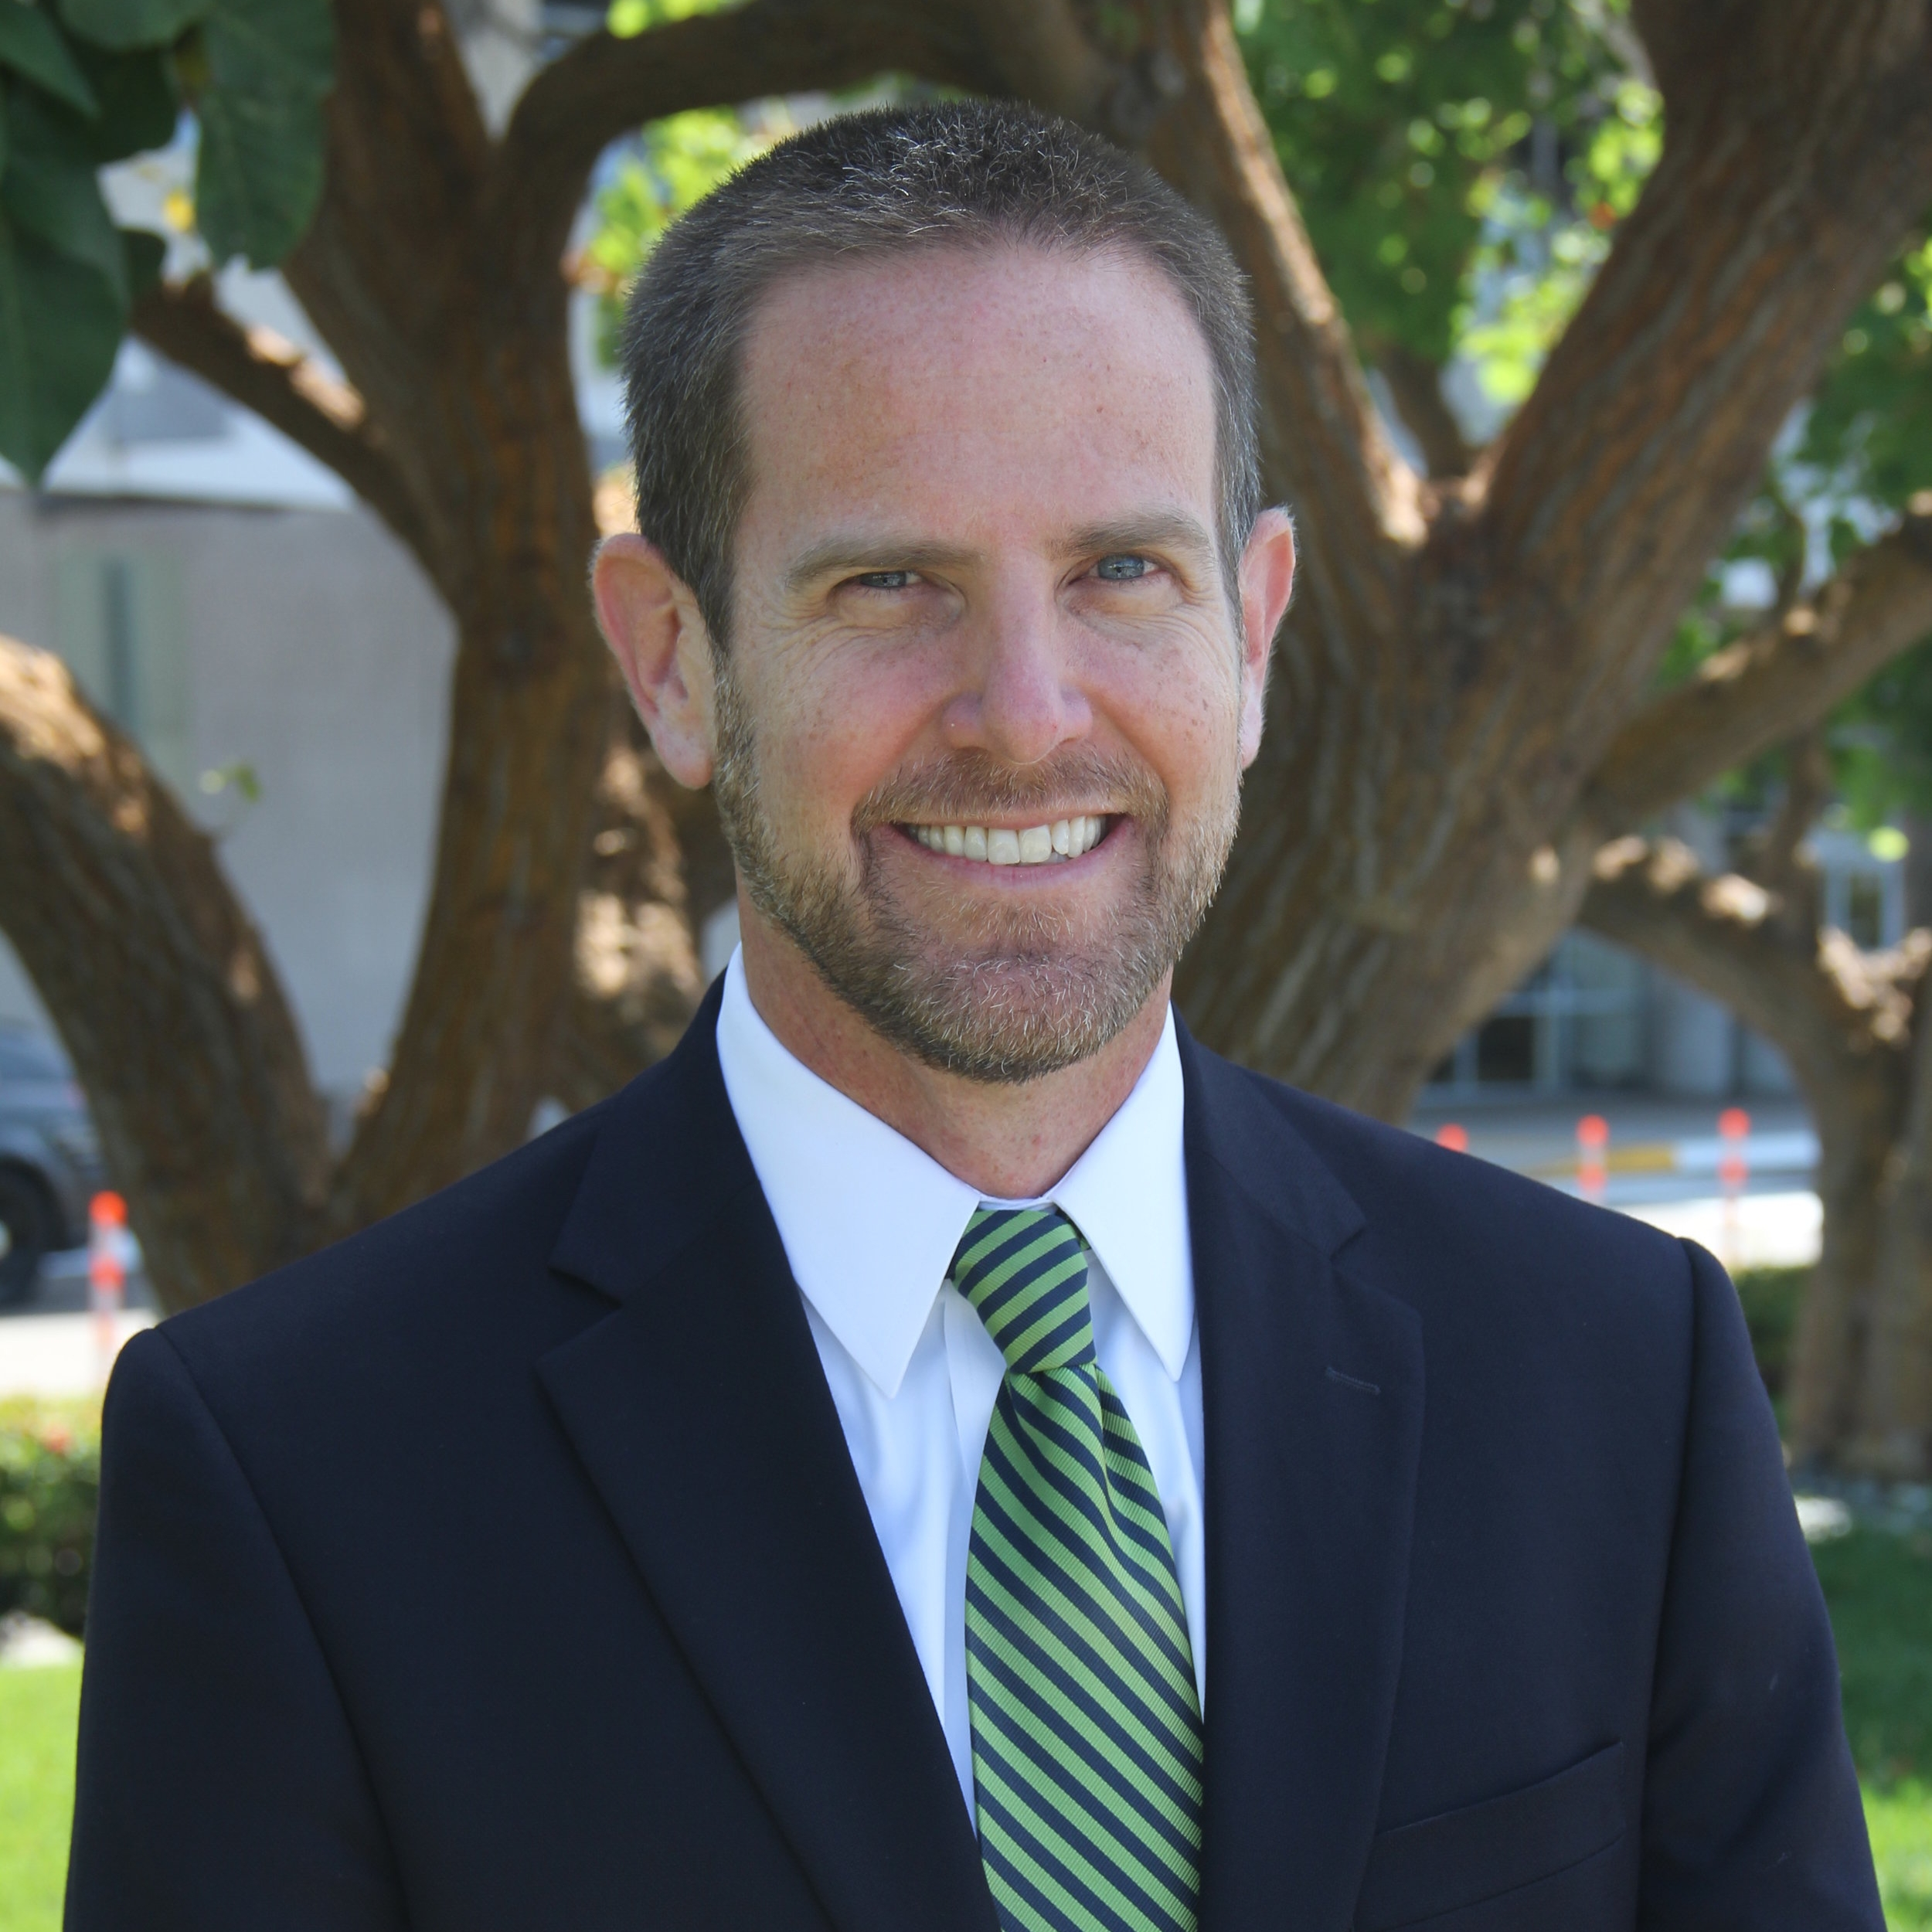 Brendan Reed - Director, Planning and Environmental Affairs, San Diego Airport Authority